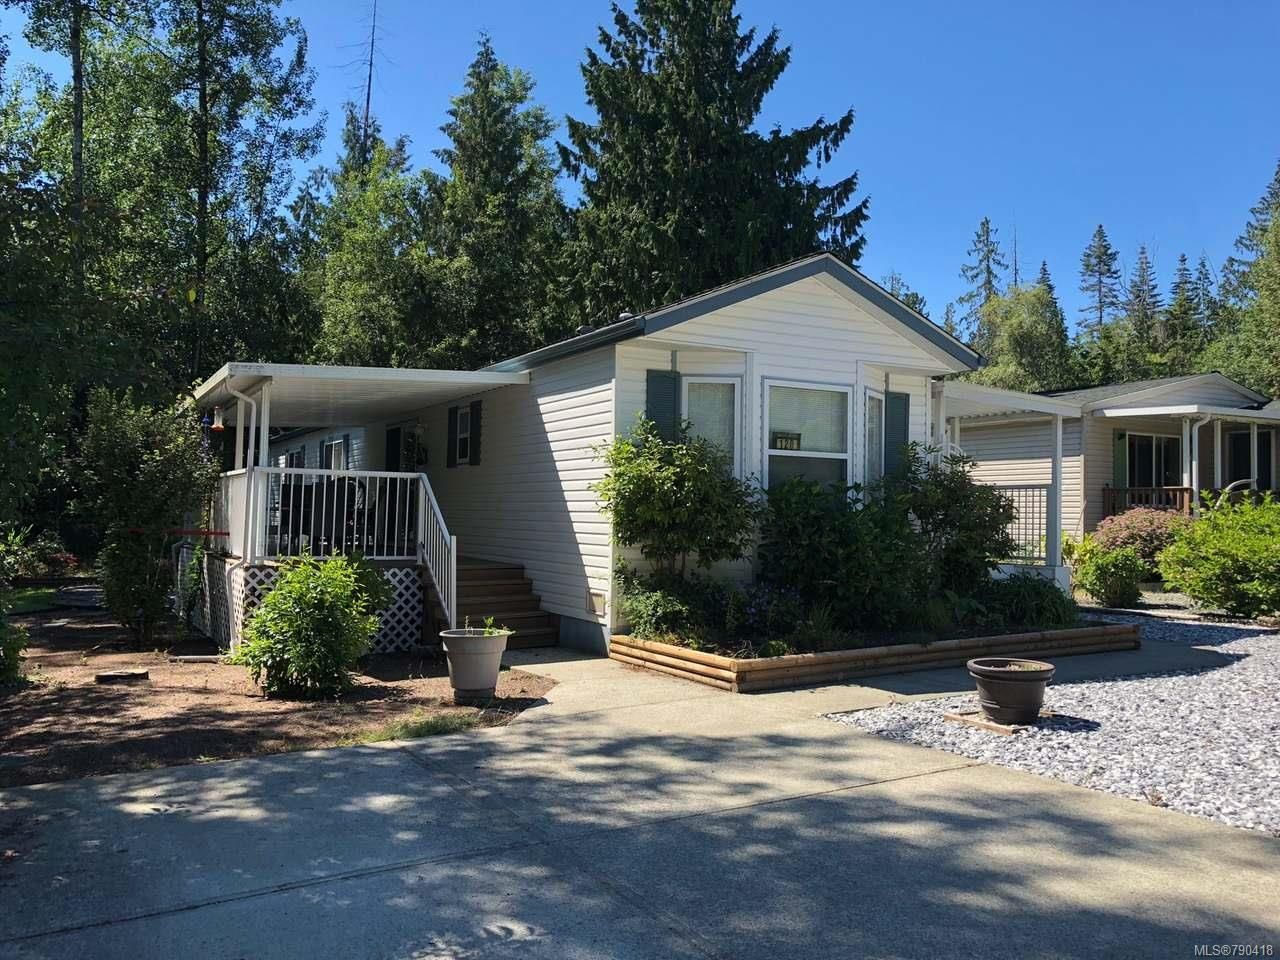 Main Photo: 120 1391 PRICE ROAD in ERRINGTON: PQ Errington/Coombs/Hilliers Manufactured Home for sale (Parksville/Qualicum)  : MLS®# 790418